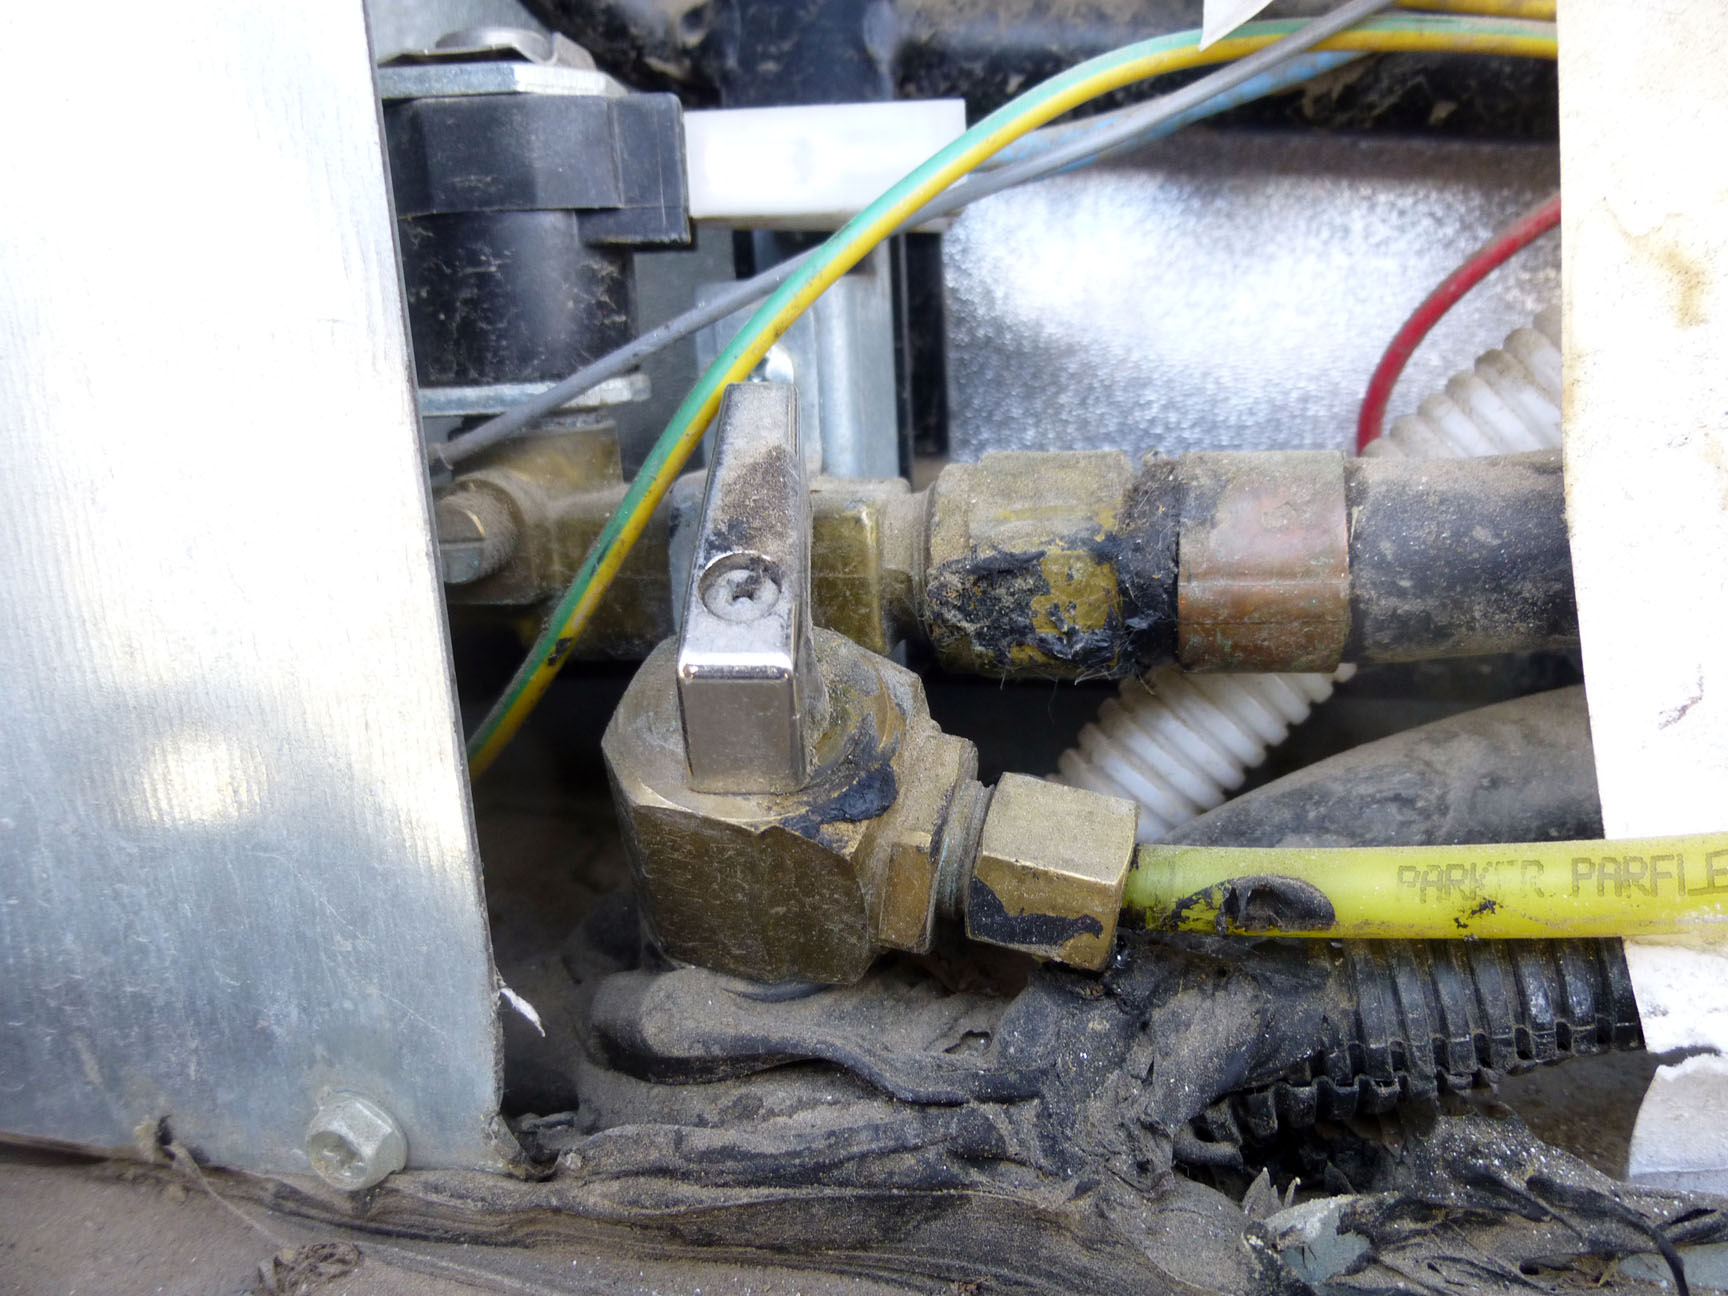 Ice Maker Water Supply Valve Replacement - ITCHY FEET and an RV